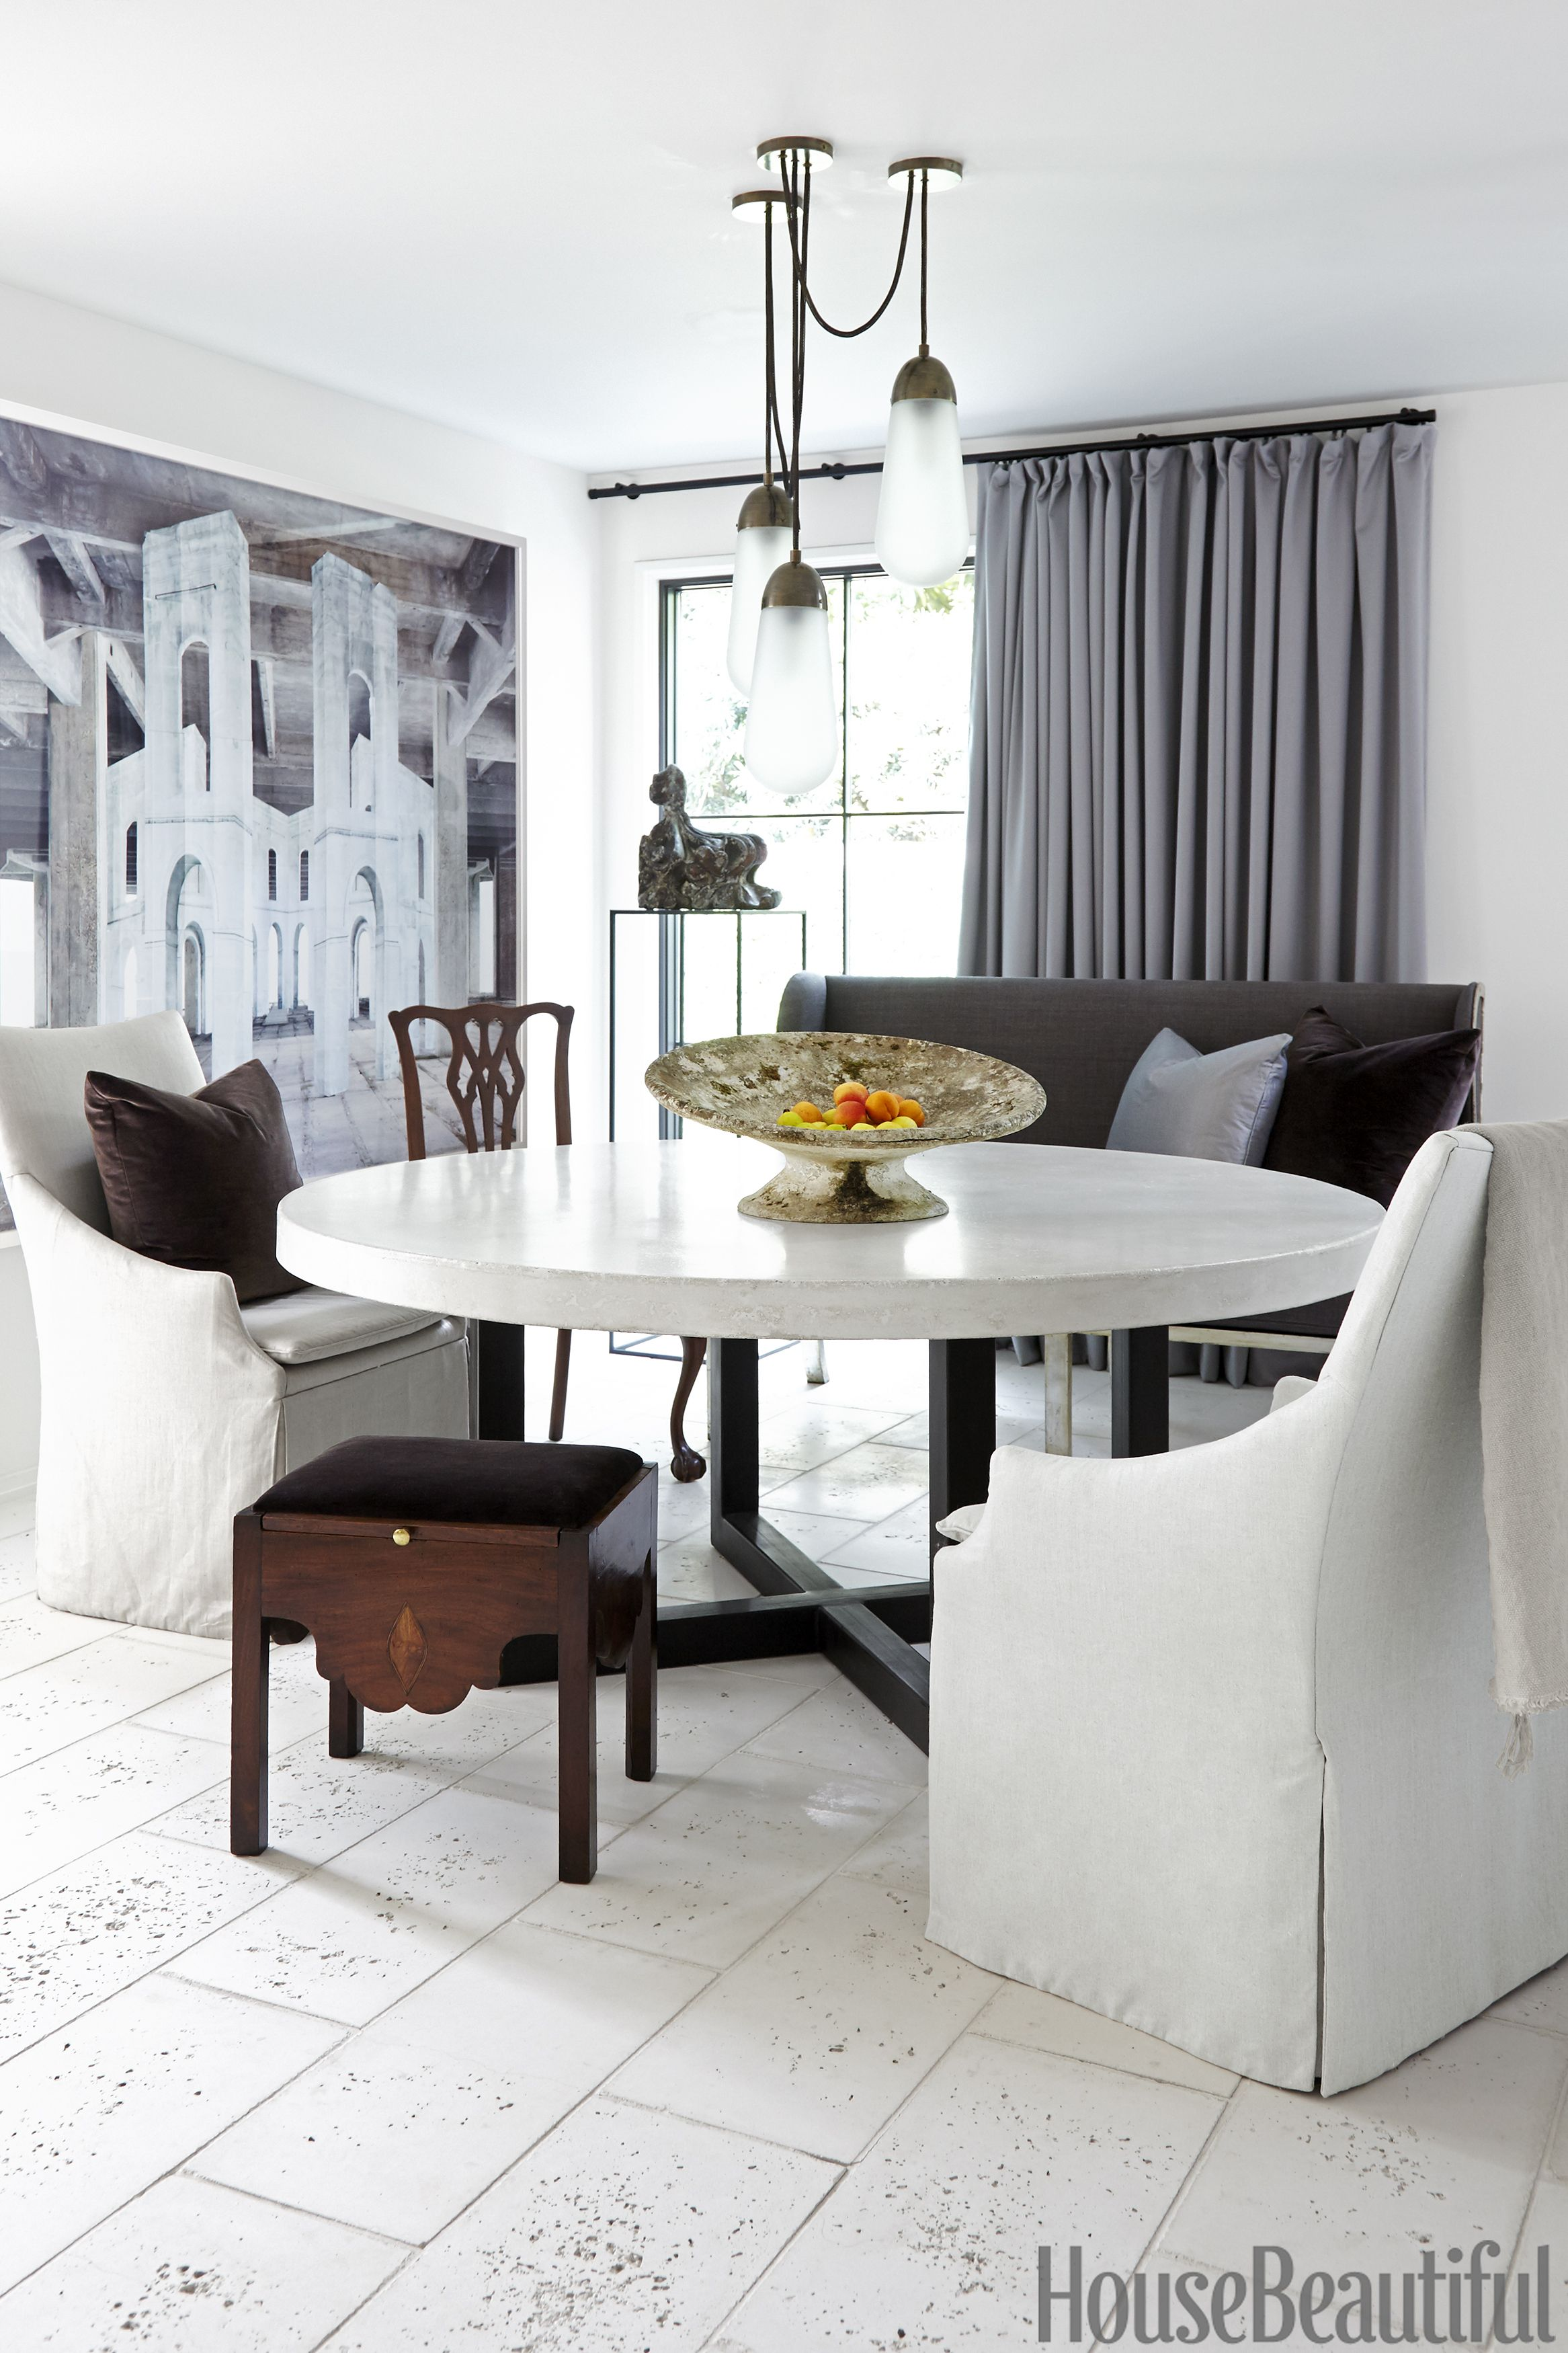 Marvelous Image. Laura Resen. Gray Dining Room